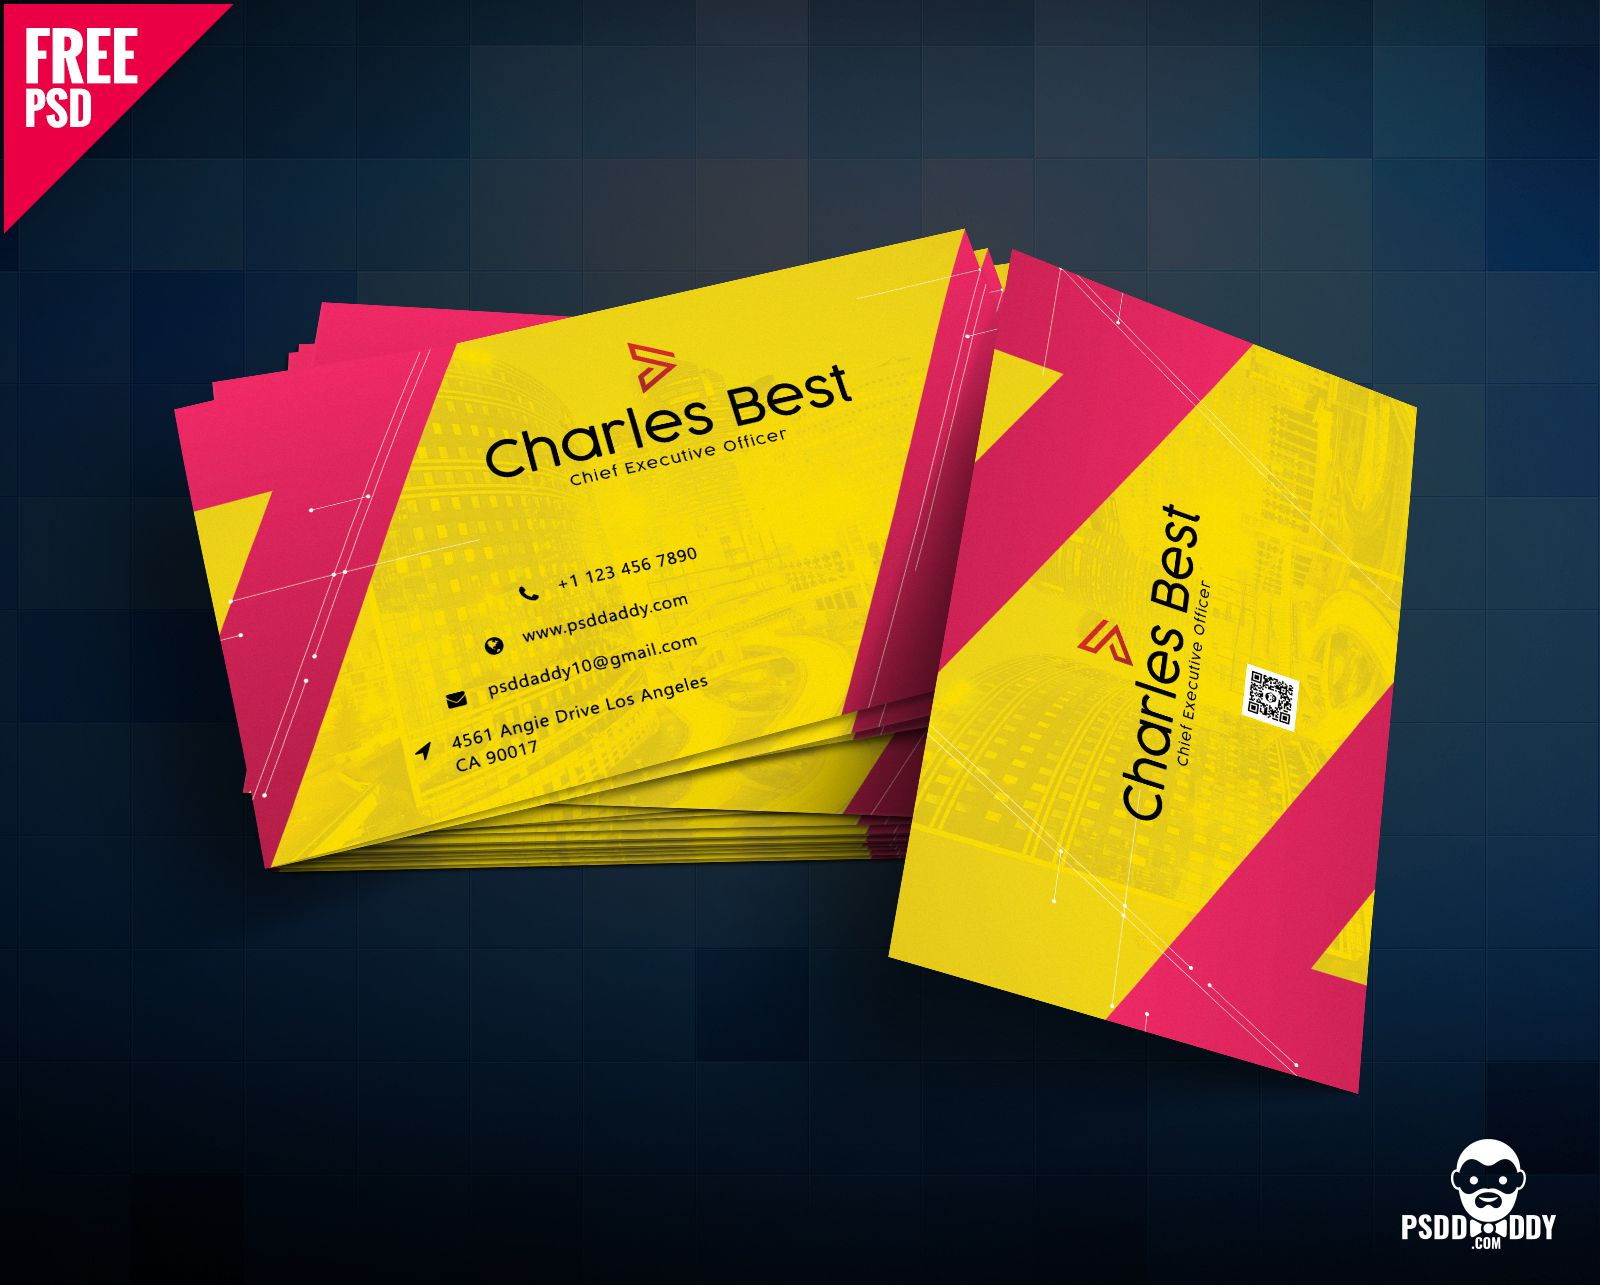 007 Formidable Blank Busines Card Template Psd Free Download Sample  PhotoshopFull